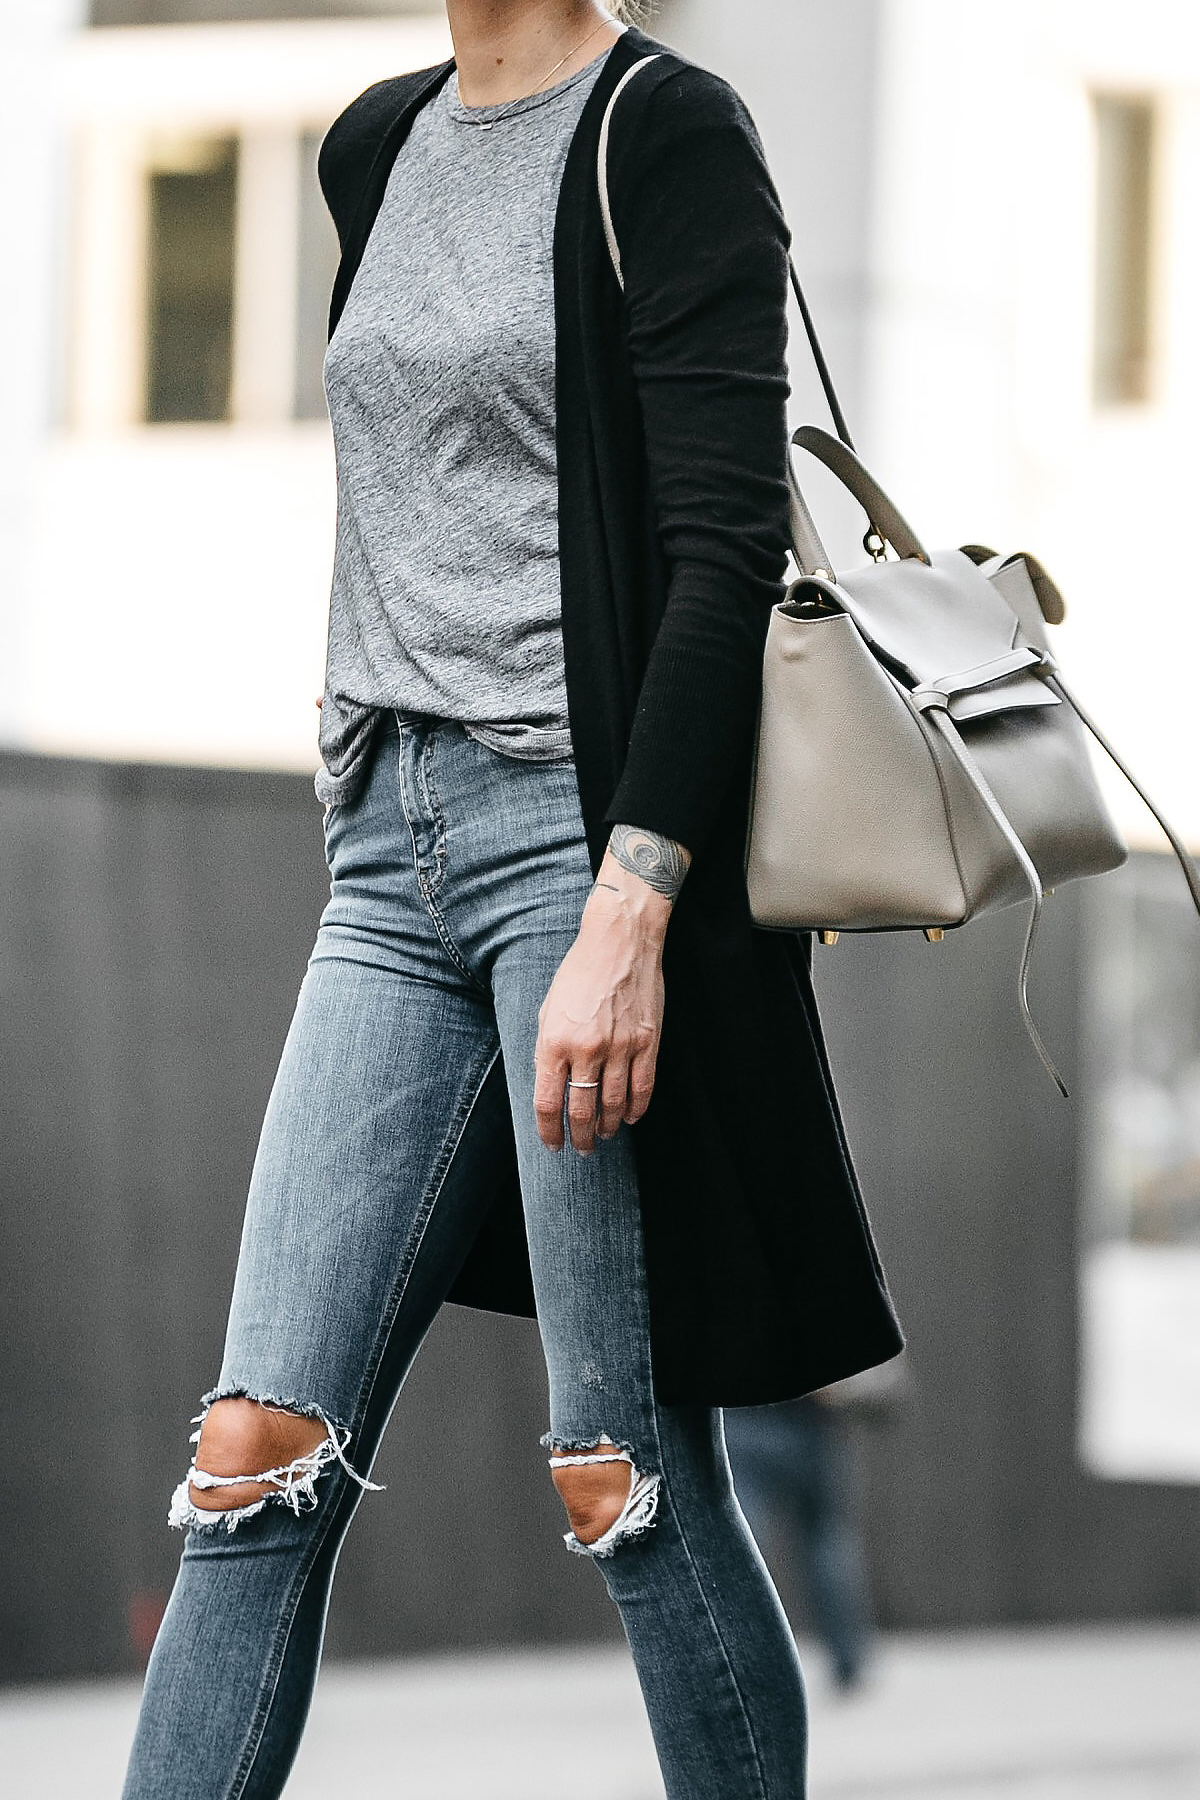 56d409b7c2 Long Black Cardigan Grey Tshirt Topshop Ripped Skinny Jeans Outfit Celine  Belt Bag Fashion Jackson Dallas